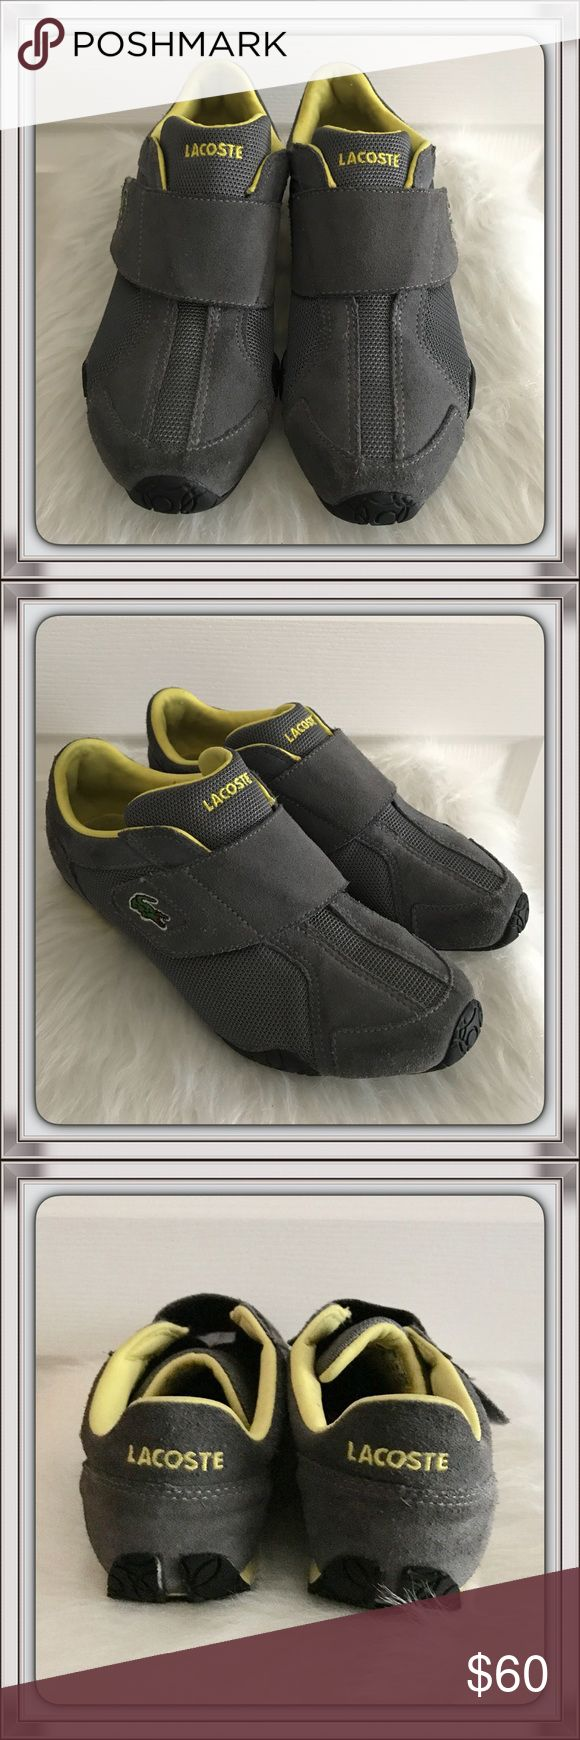 Lacoste Sport Sneakers Awesome Lacoste Sport Sneakers (Women's) made of gray suede with yellow accents. Gently worn. Excellent condition! Lacoste Shoes Sneakers